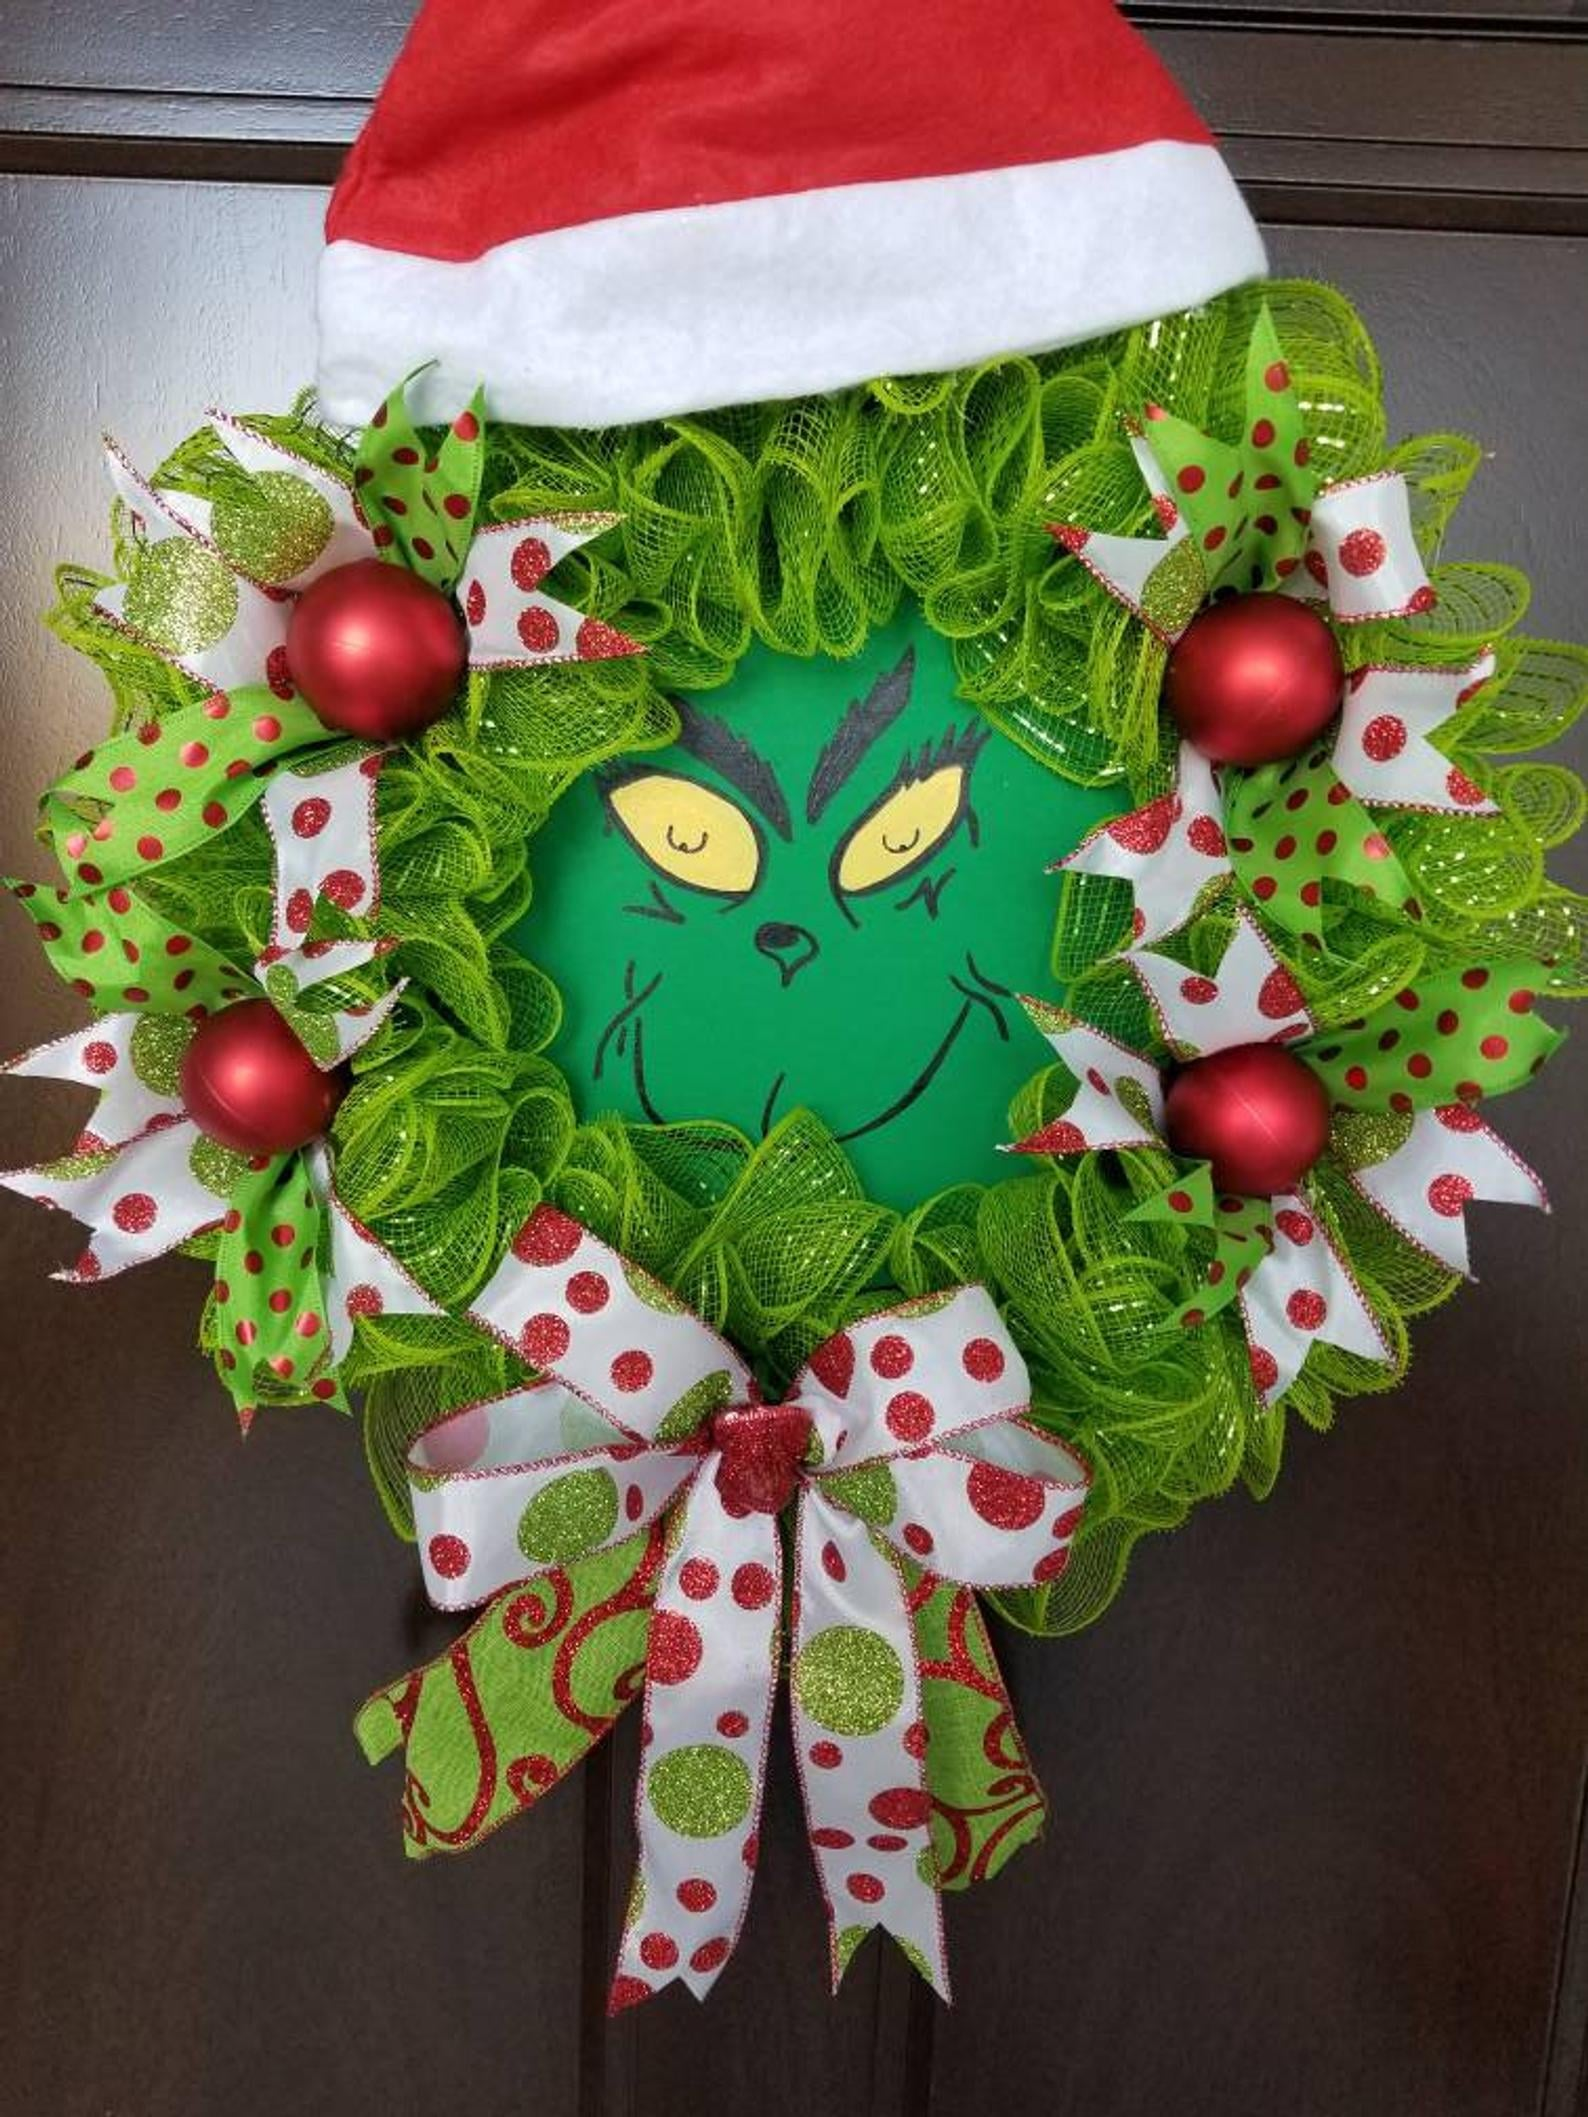 Shop Grinch Themed Christmas Decorations Popsugar Home